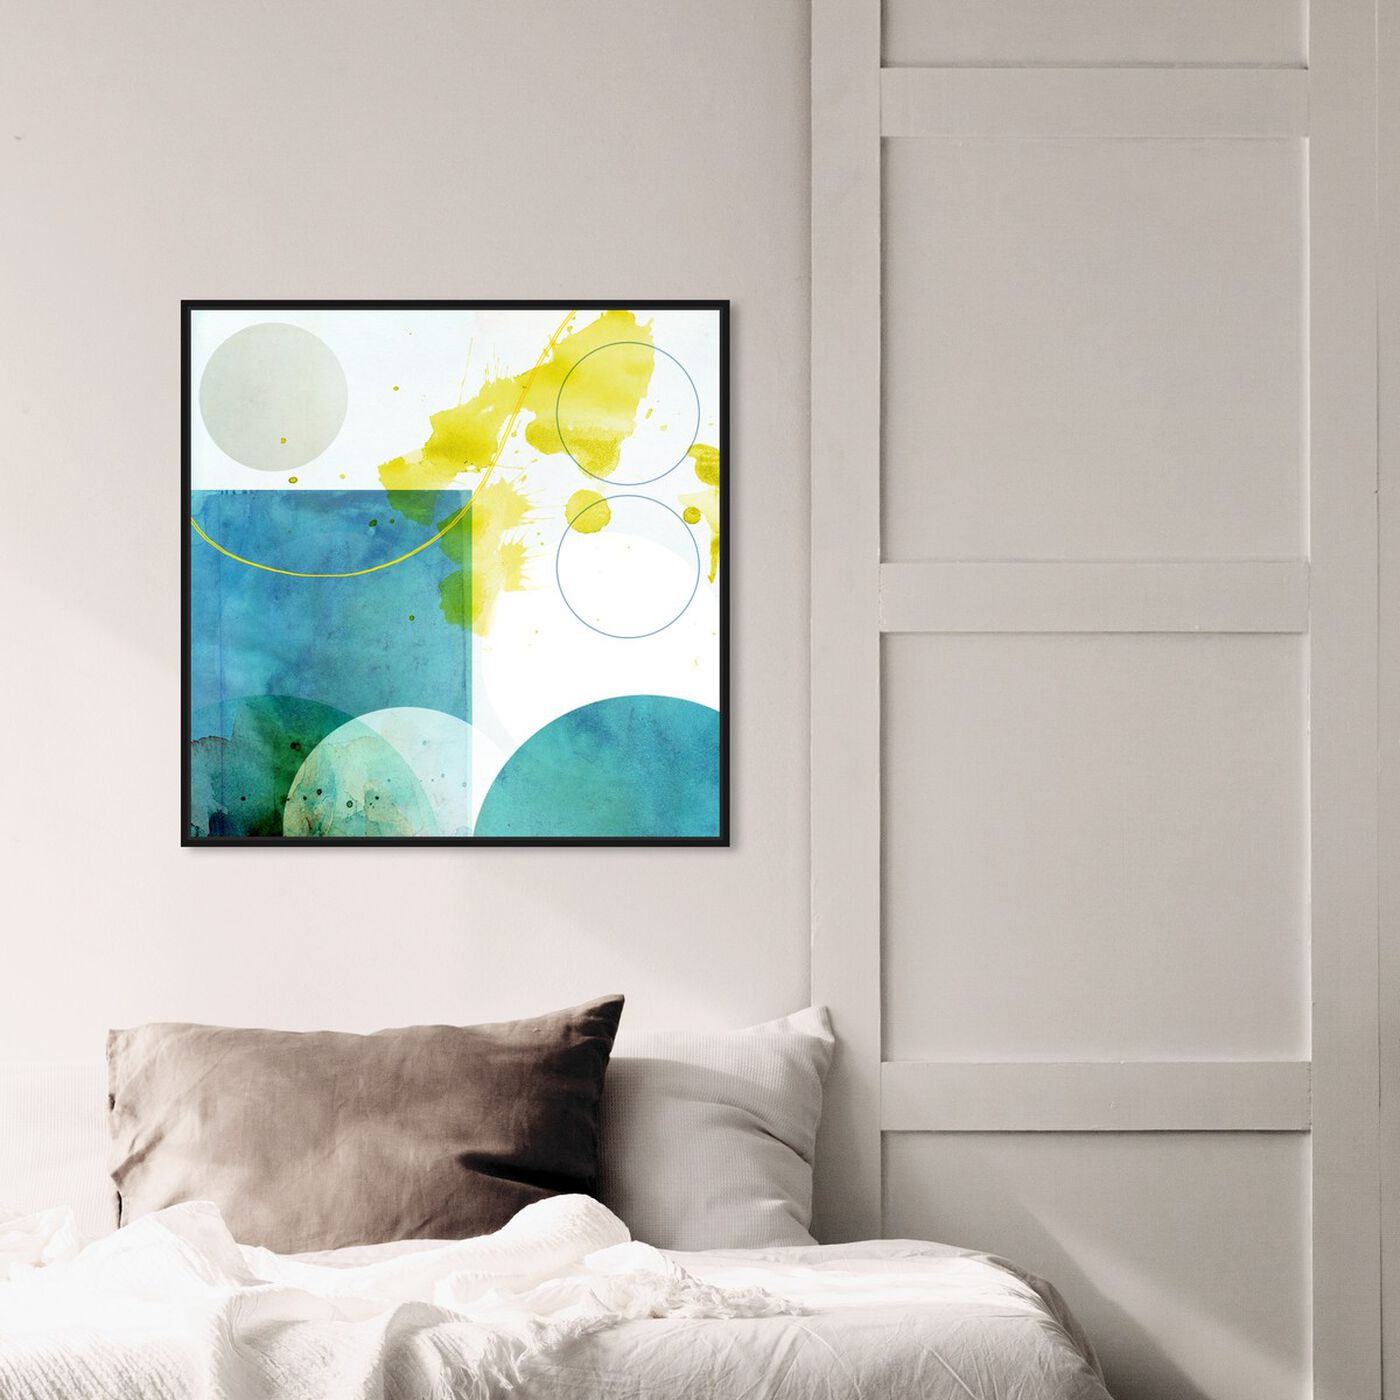 Hanging view of Lauren featuring abstract and geometric art.